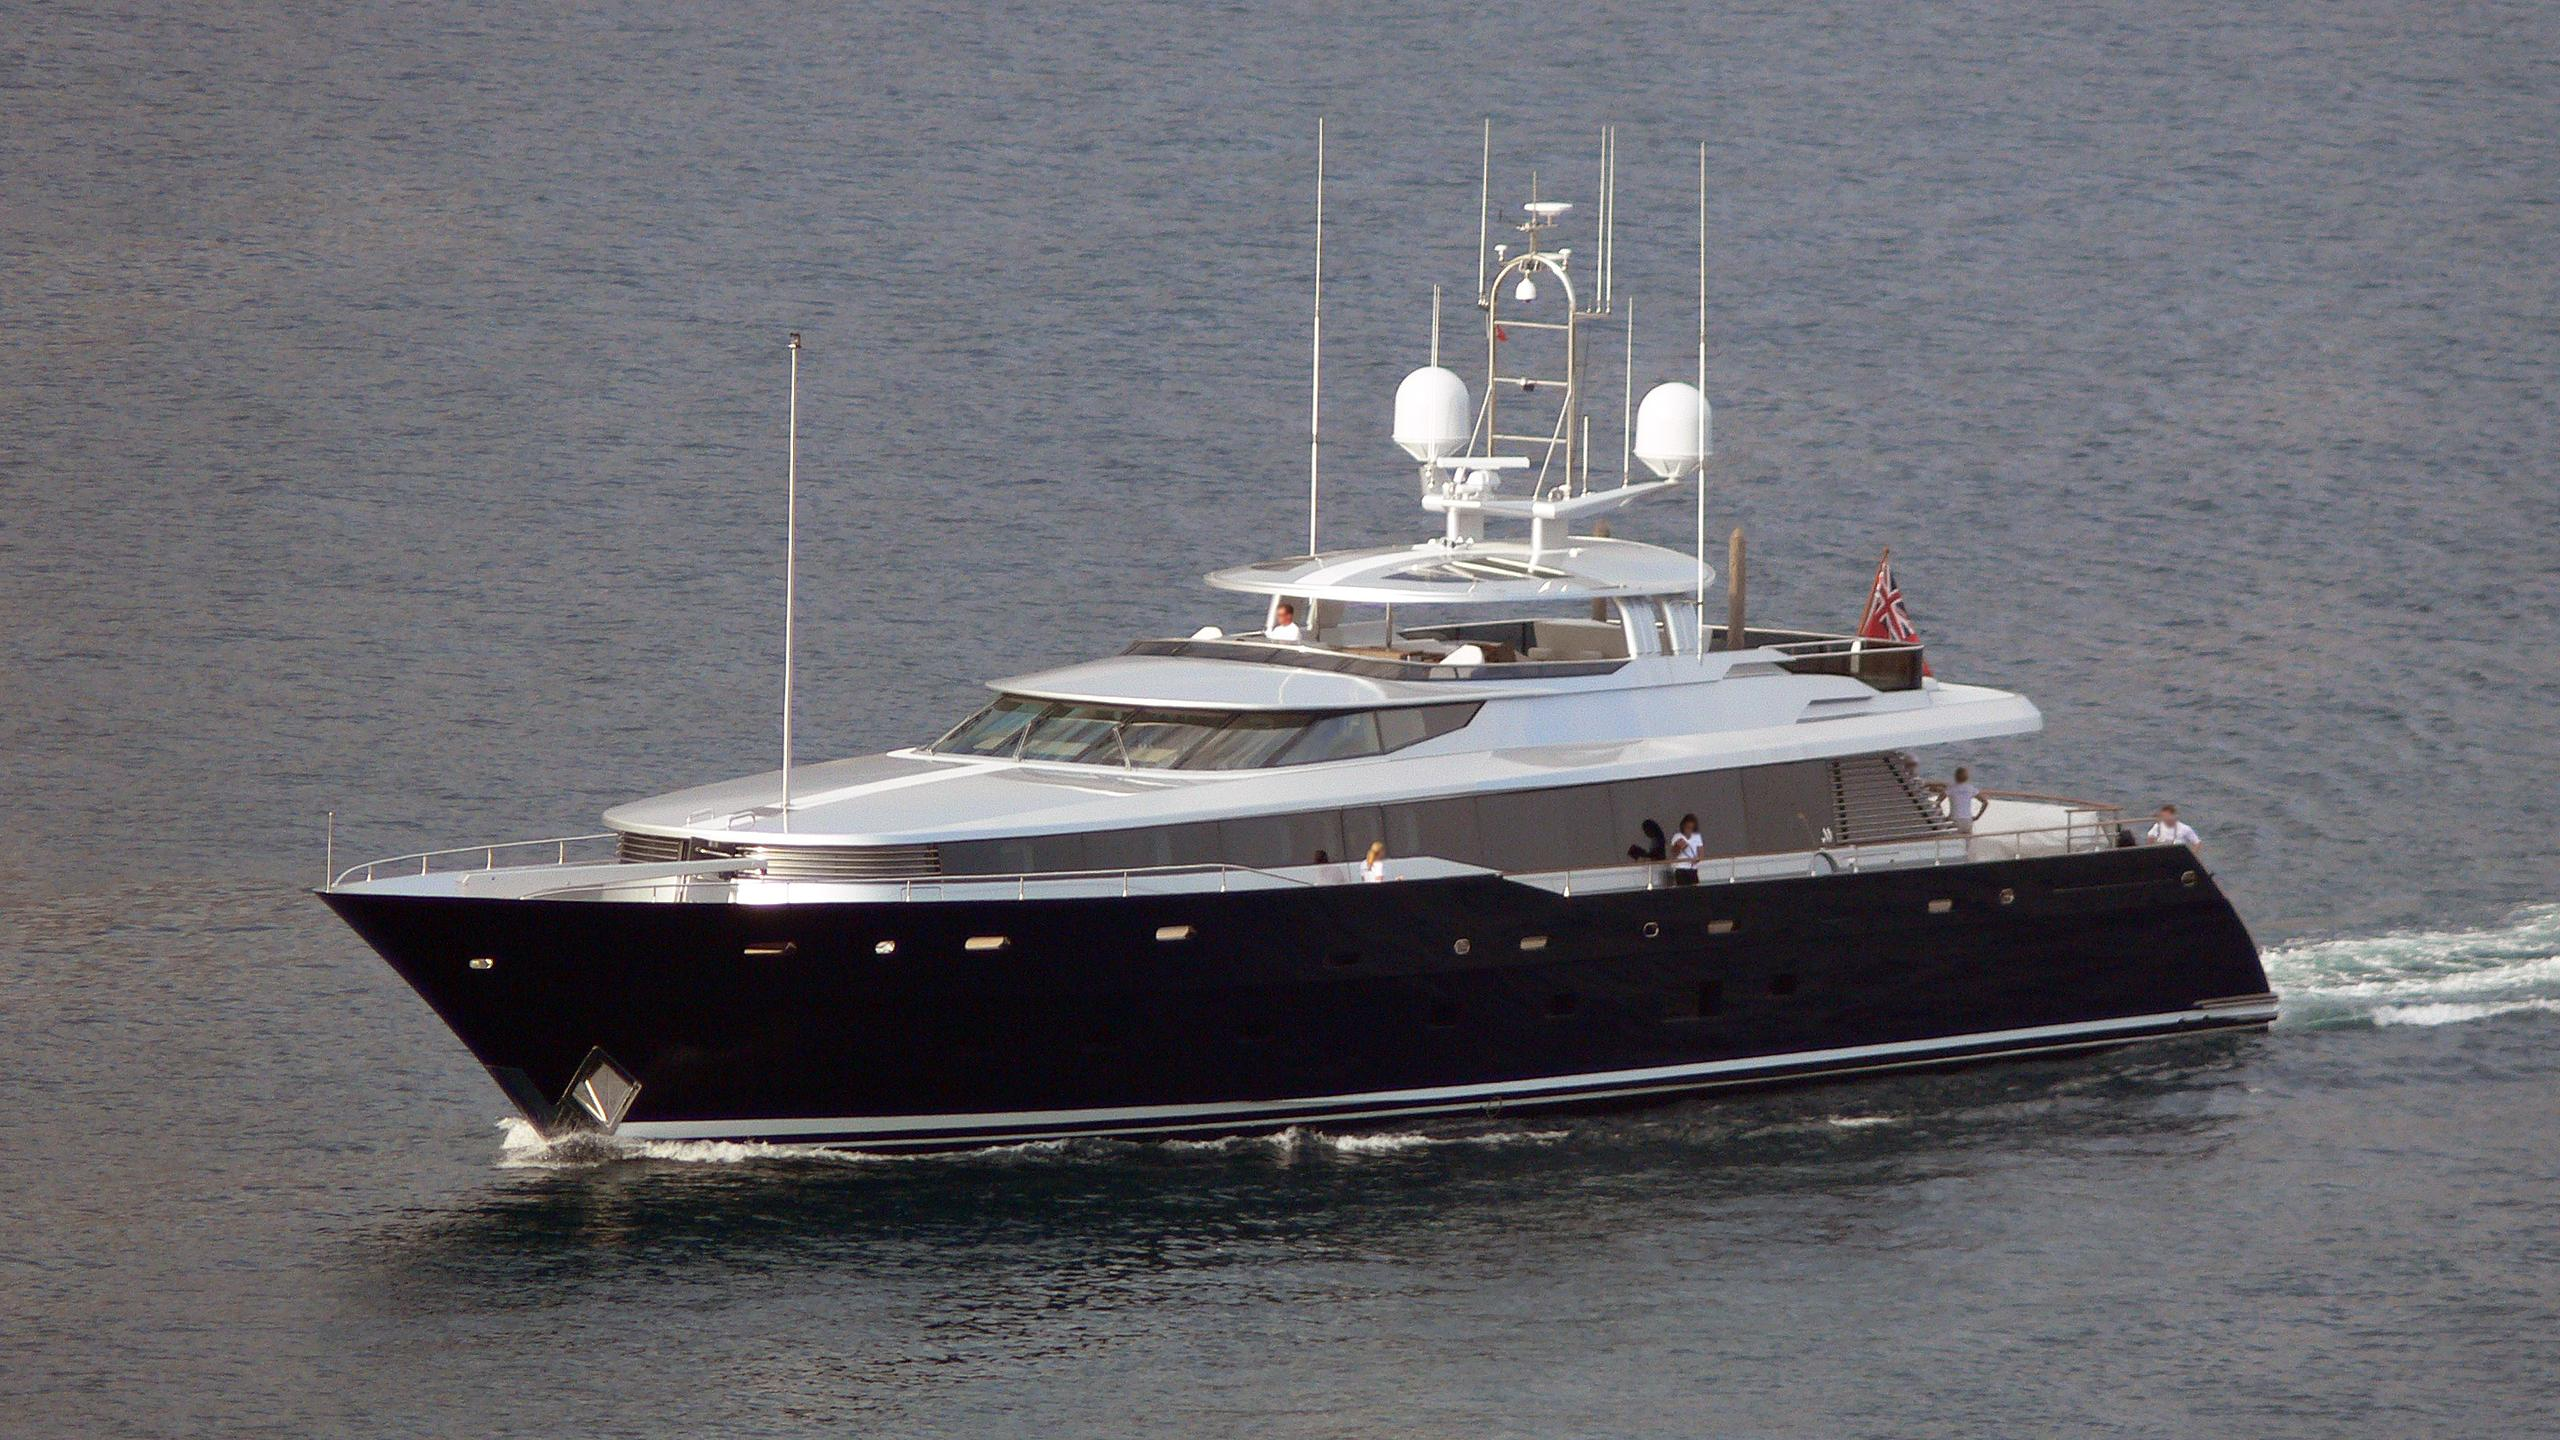 gazelle-polly-motor-yacht-alloy-2007-41m-cruising-half-profile